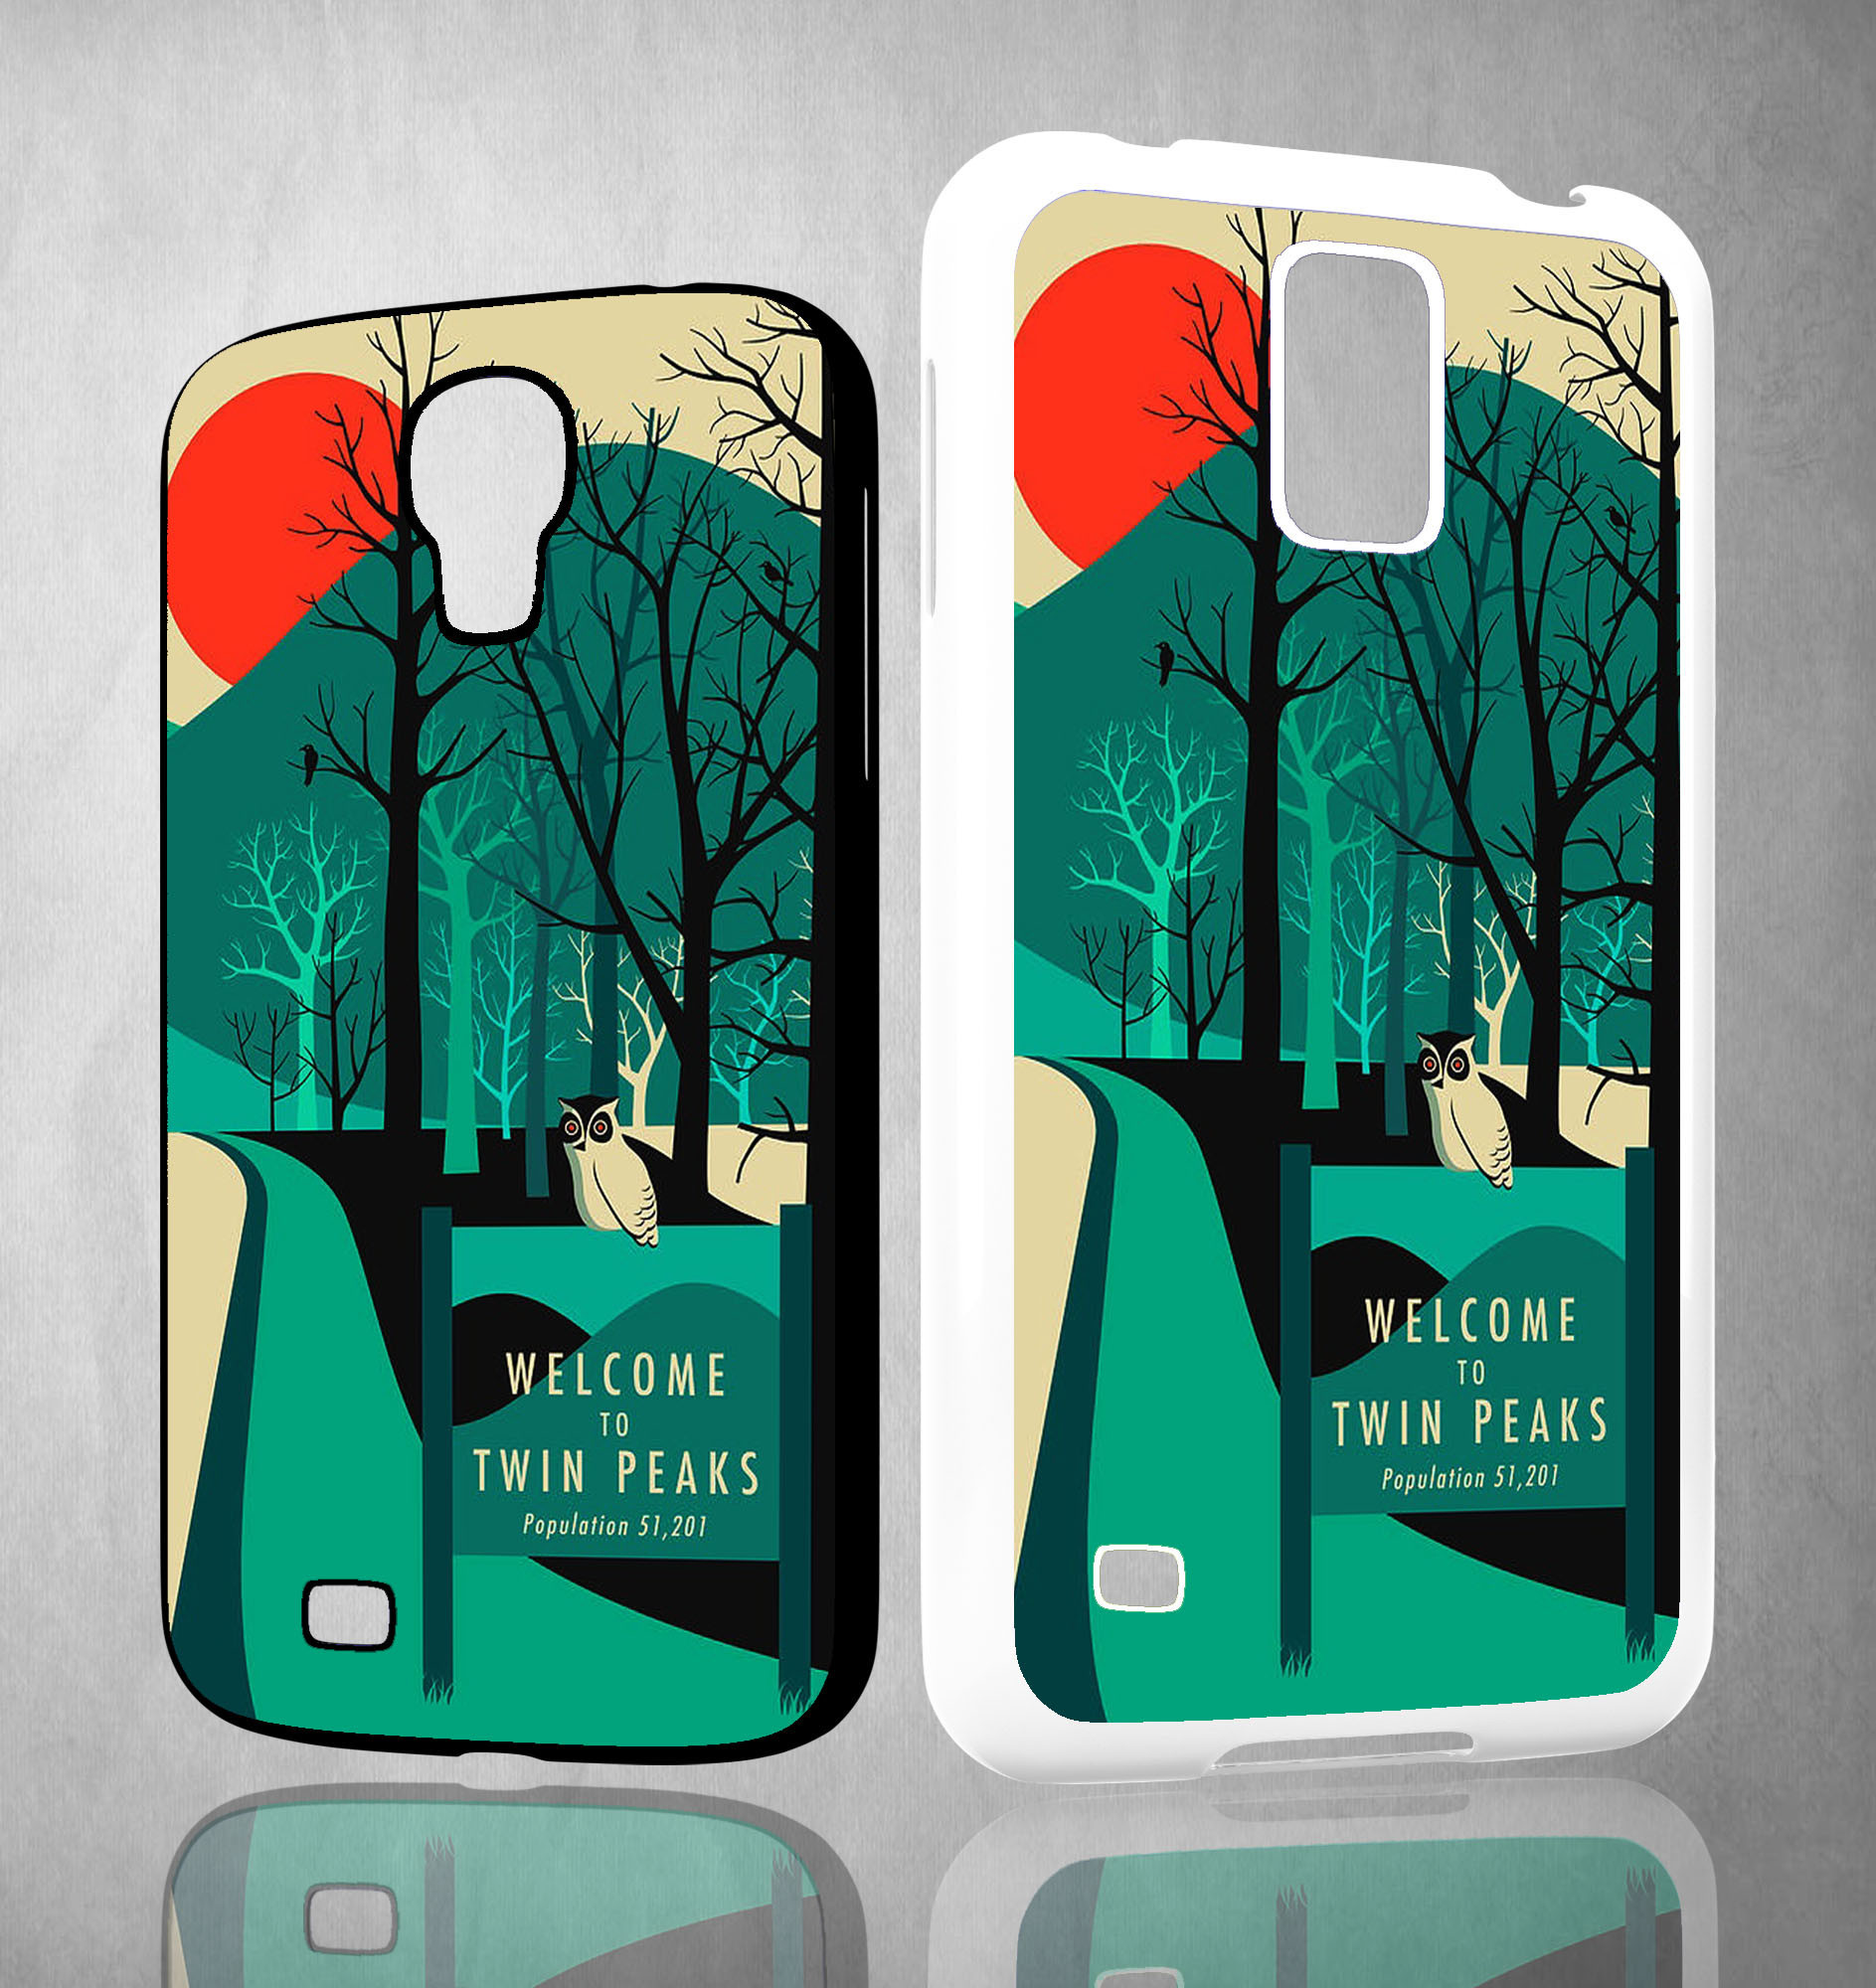 welcome to twin peaks wallpaper Y0980 Samsung Galaxy S3 S4 S5 (Mini) S6 S6